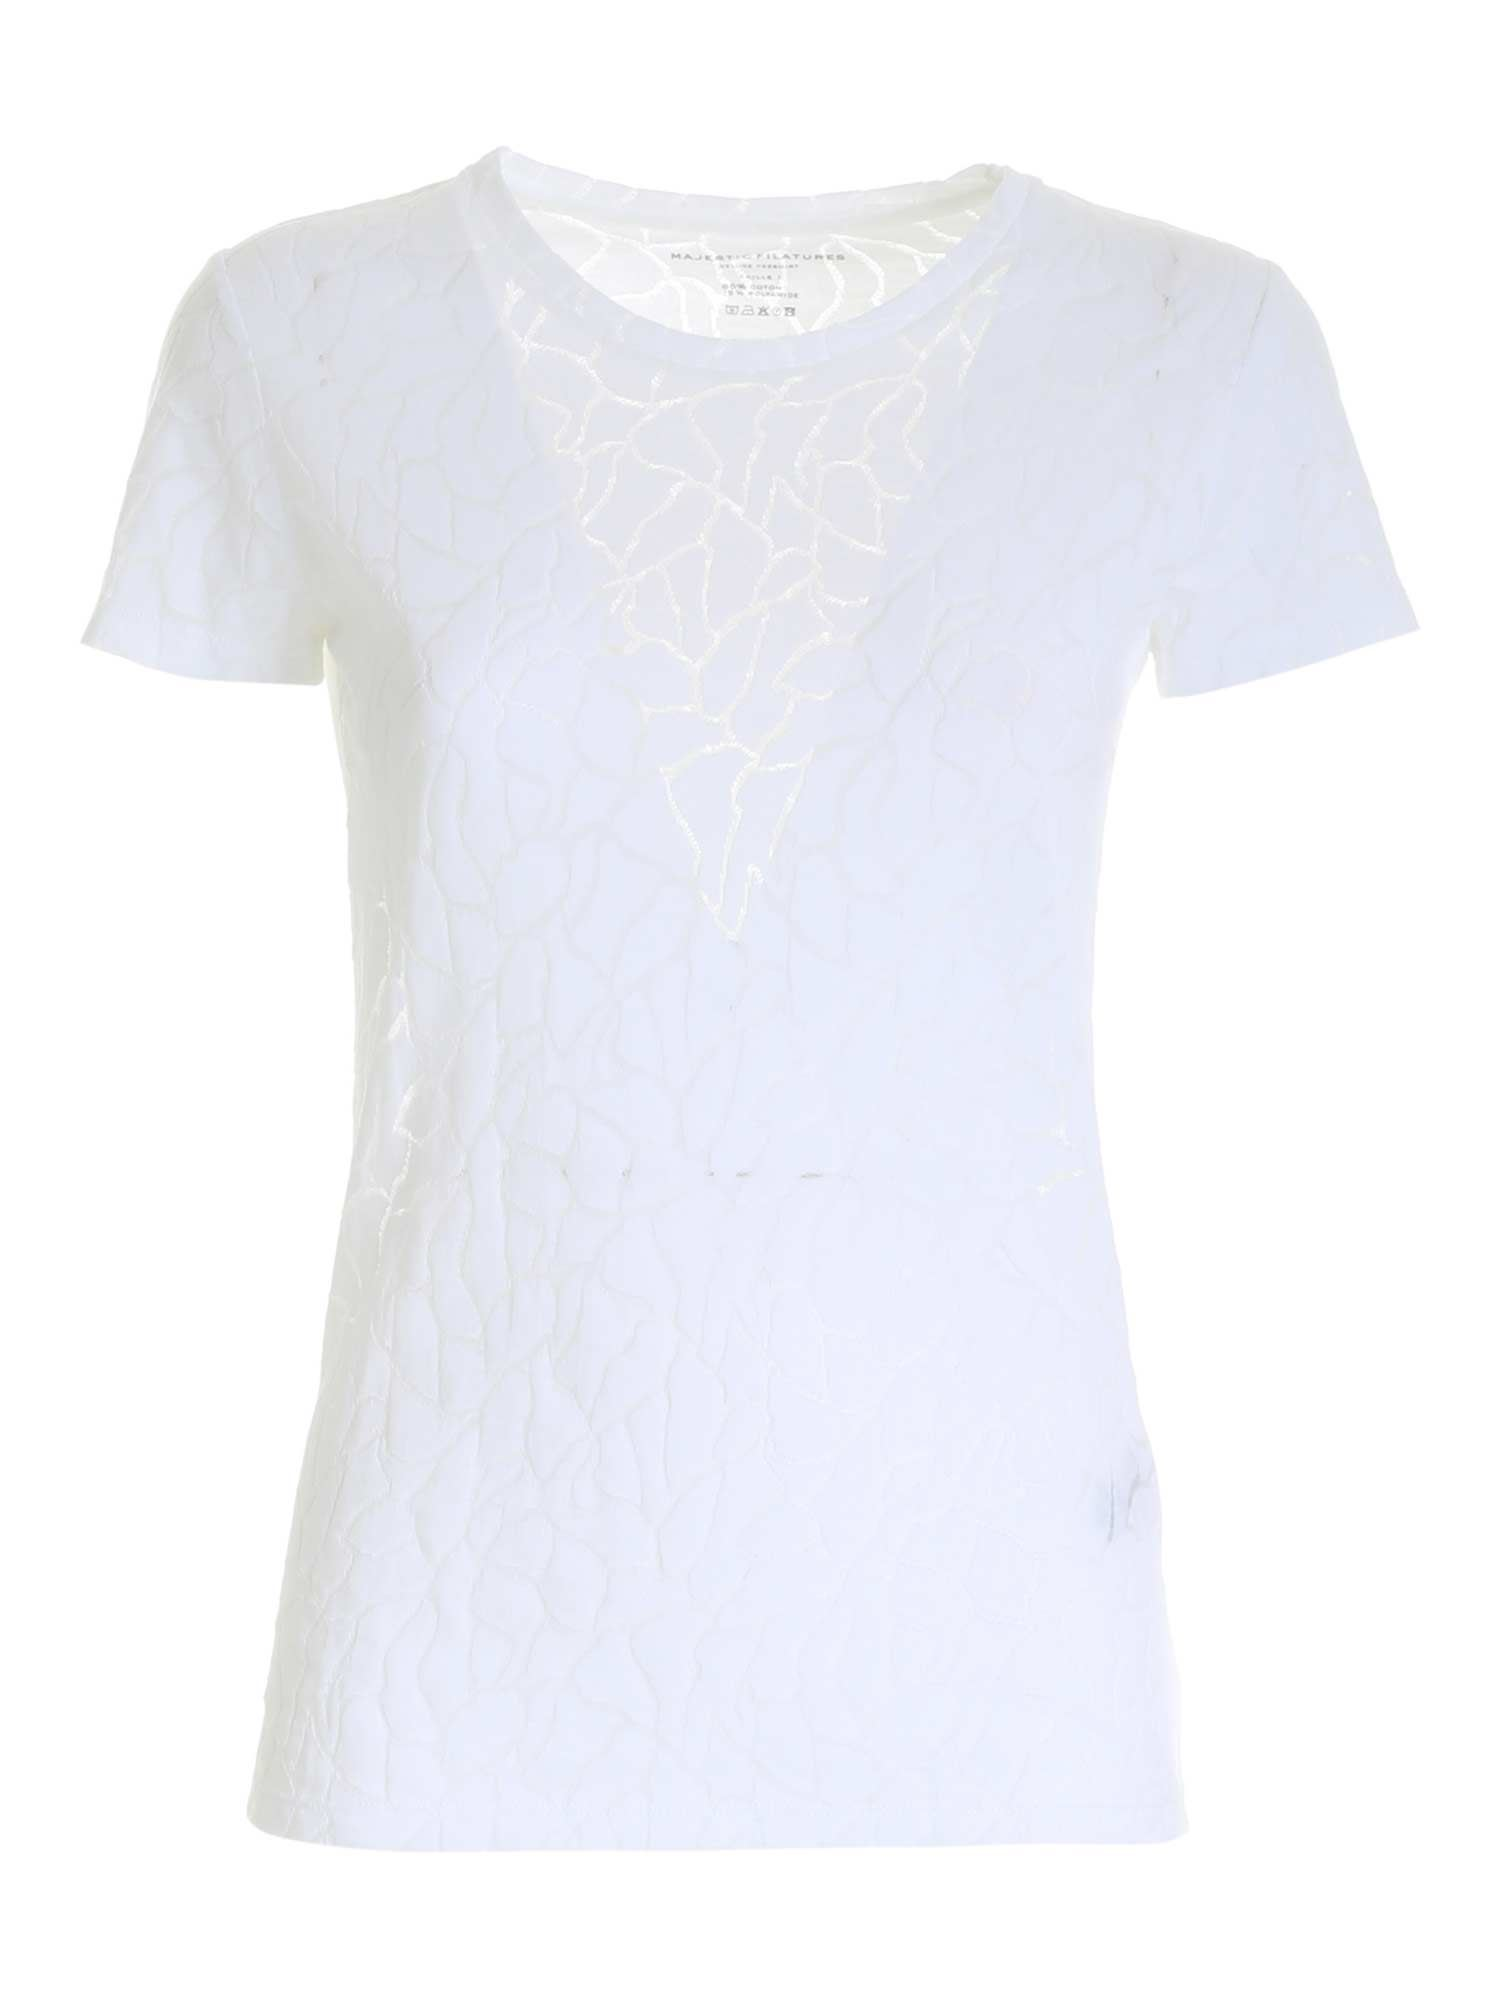 Majestic MAJESTIC FILATURES SEMI-TRANSPARENT T-SHIRT IN WHITE